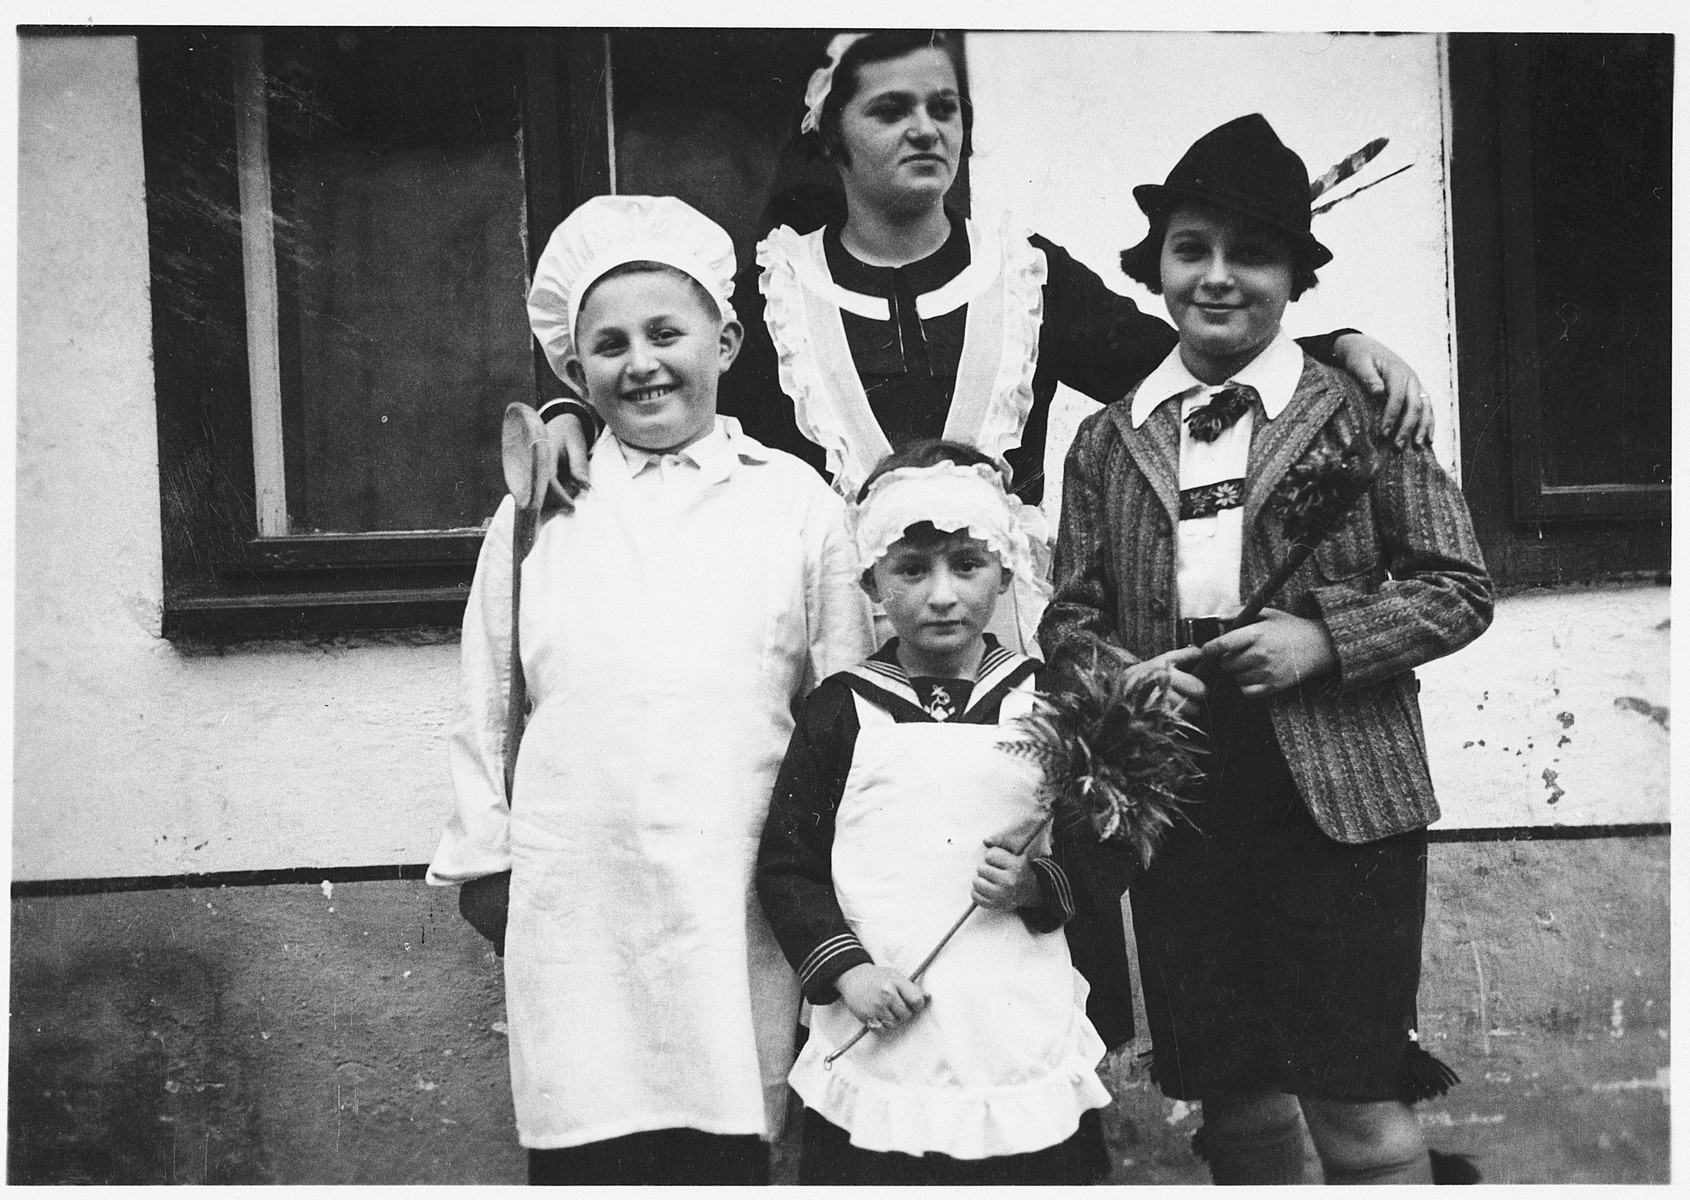 Four Jewish children pose together in their Purim costumes.  Josef Mittelman, dressed as a chef, is on the far left.  His brother Erwin is dressed as a maid, and their two older cousins are to their right.